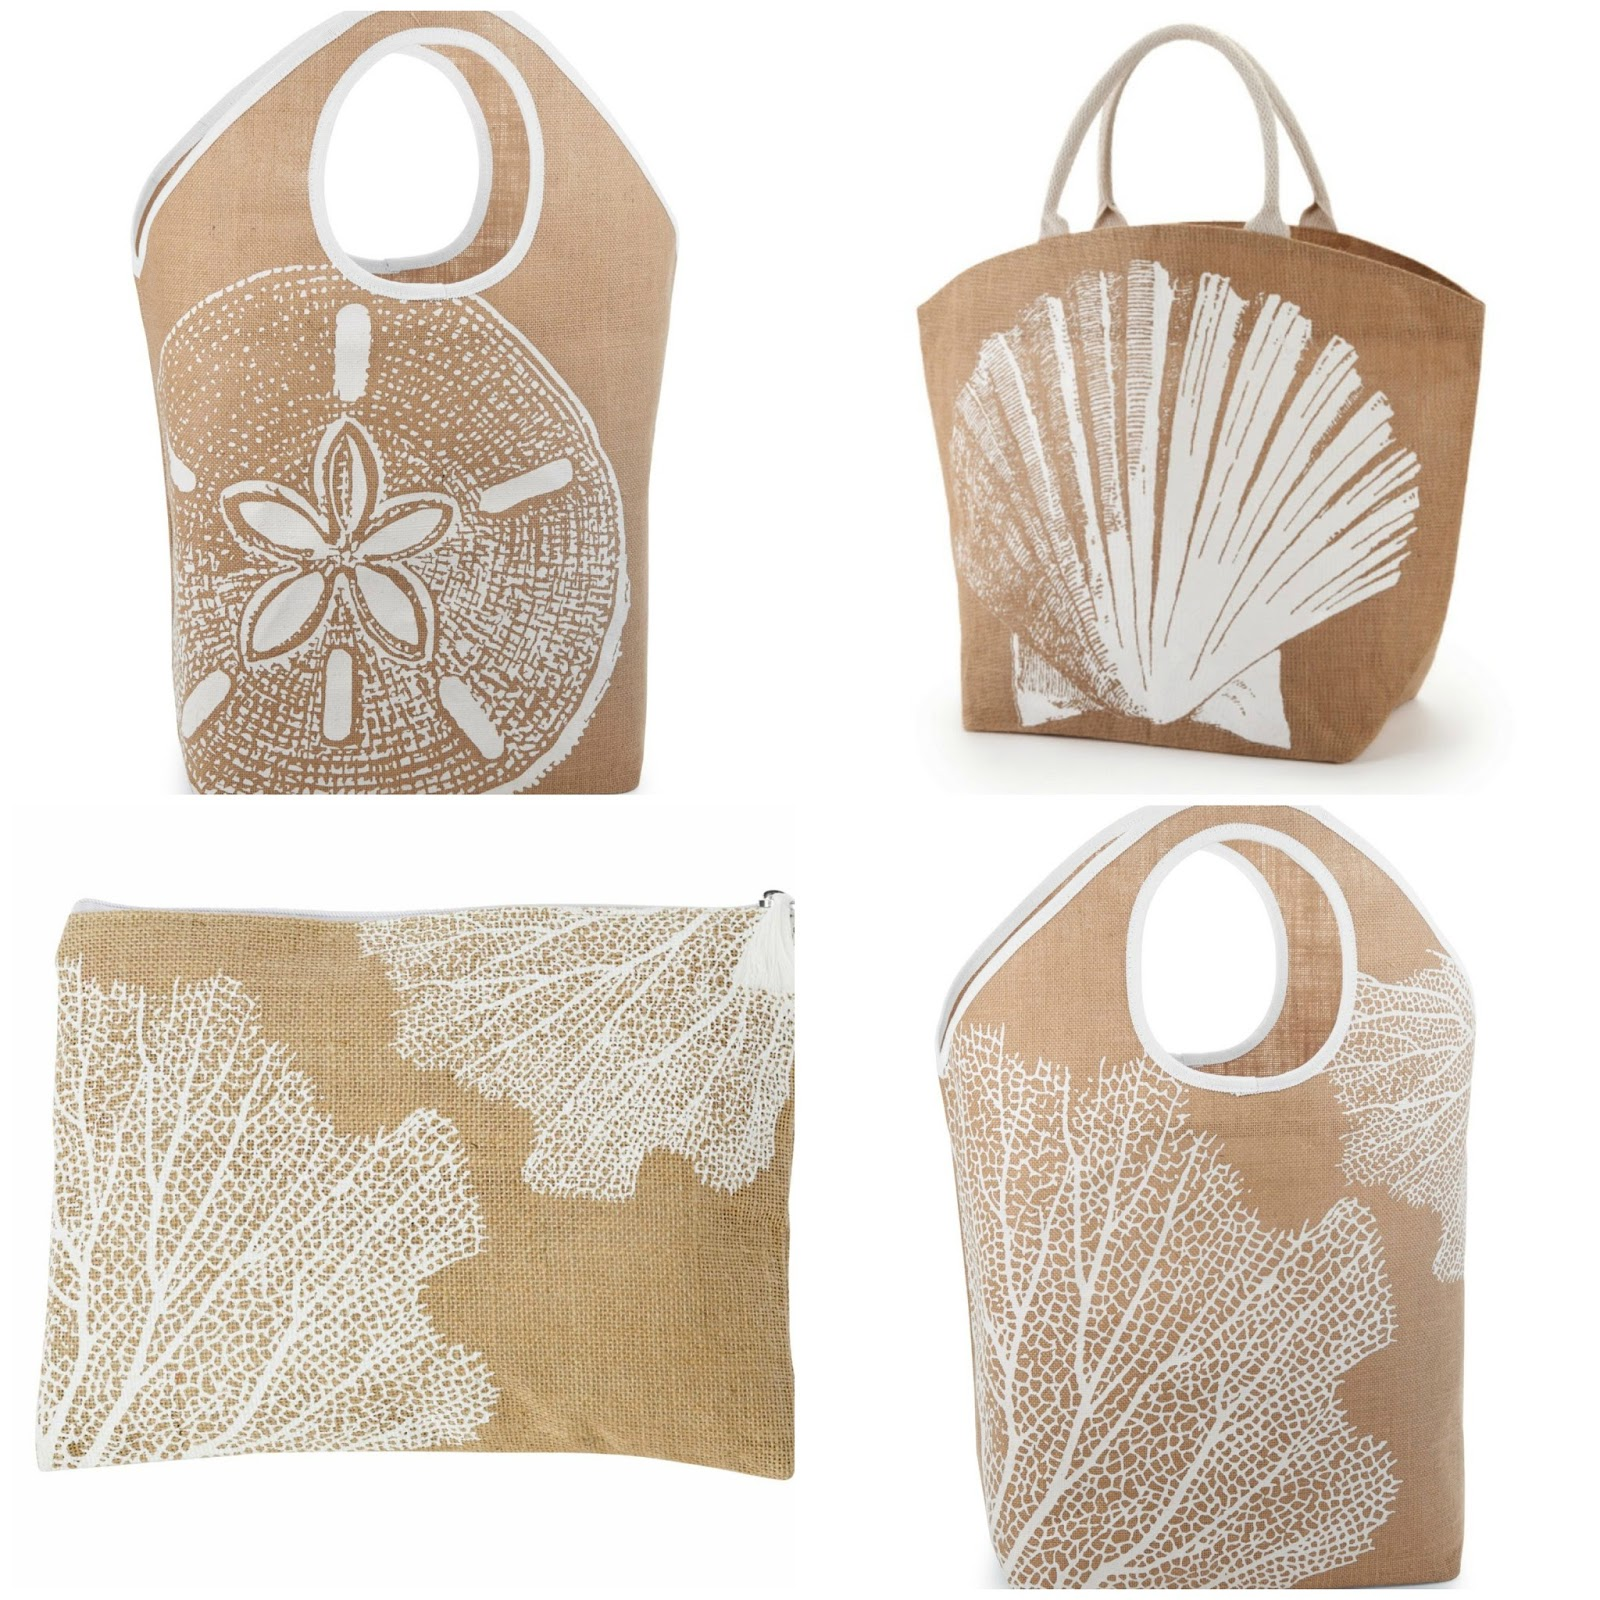 Sea glass cottage favorite things 2 jute tote bags for Favorite things home decor